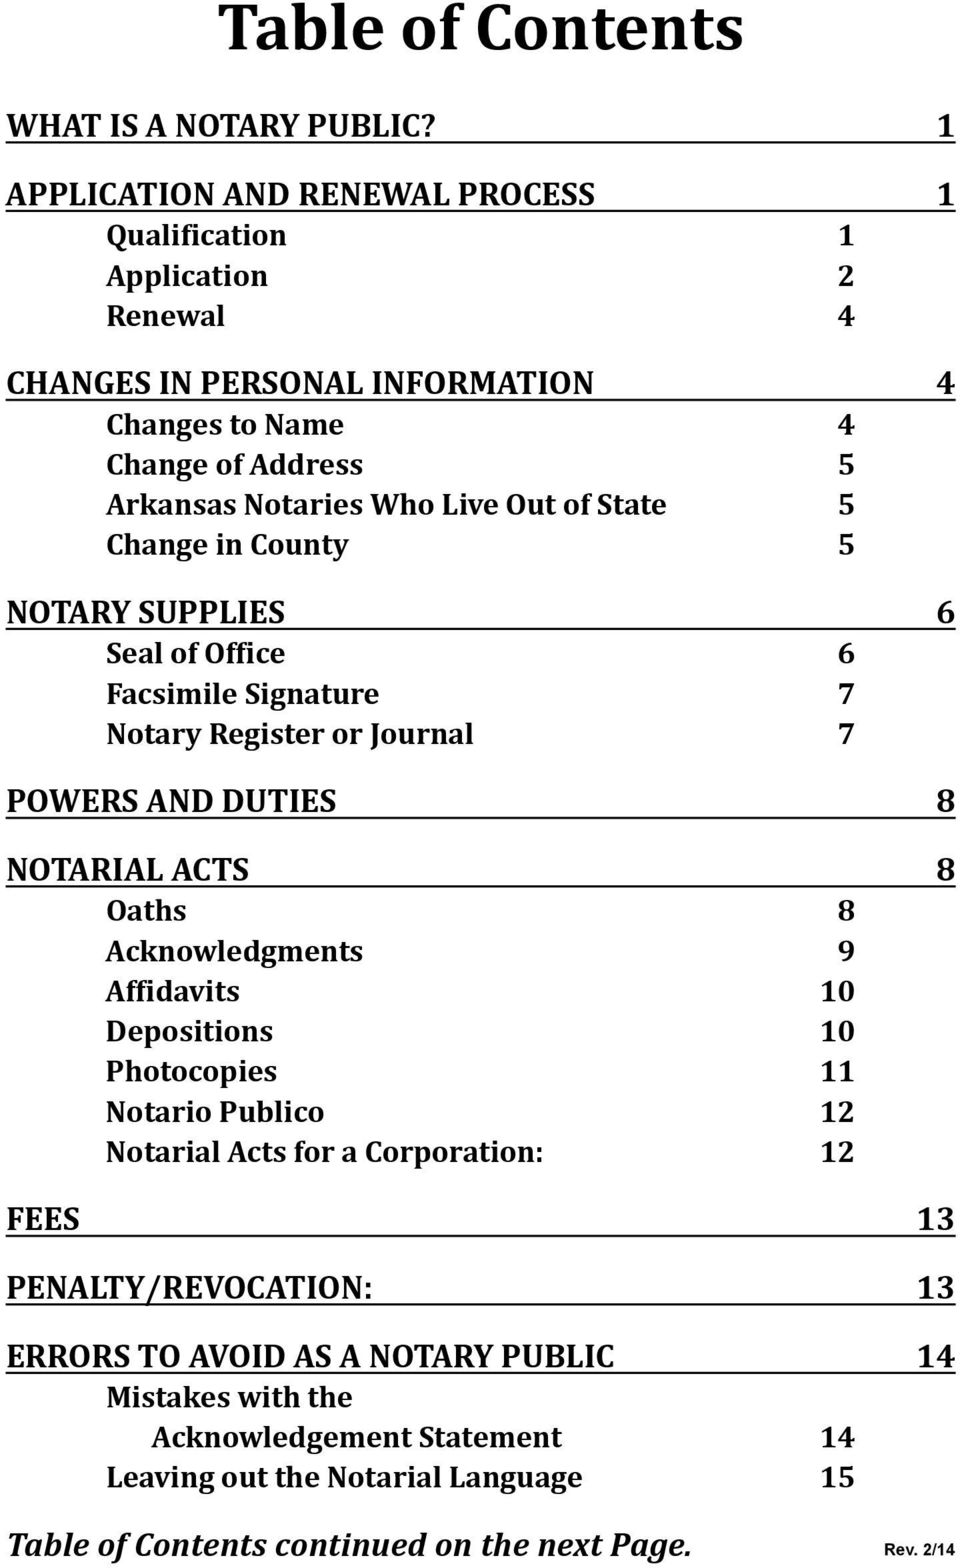 Out of State 5 Change in County 5 Notary Supplies 6 Seal of Office 6 Facsimile Signature 7 Notary Register or Journal 7 Powers and Duties 8 Notarial Acts 8 Oaths 8